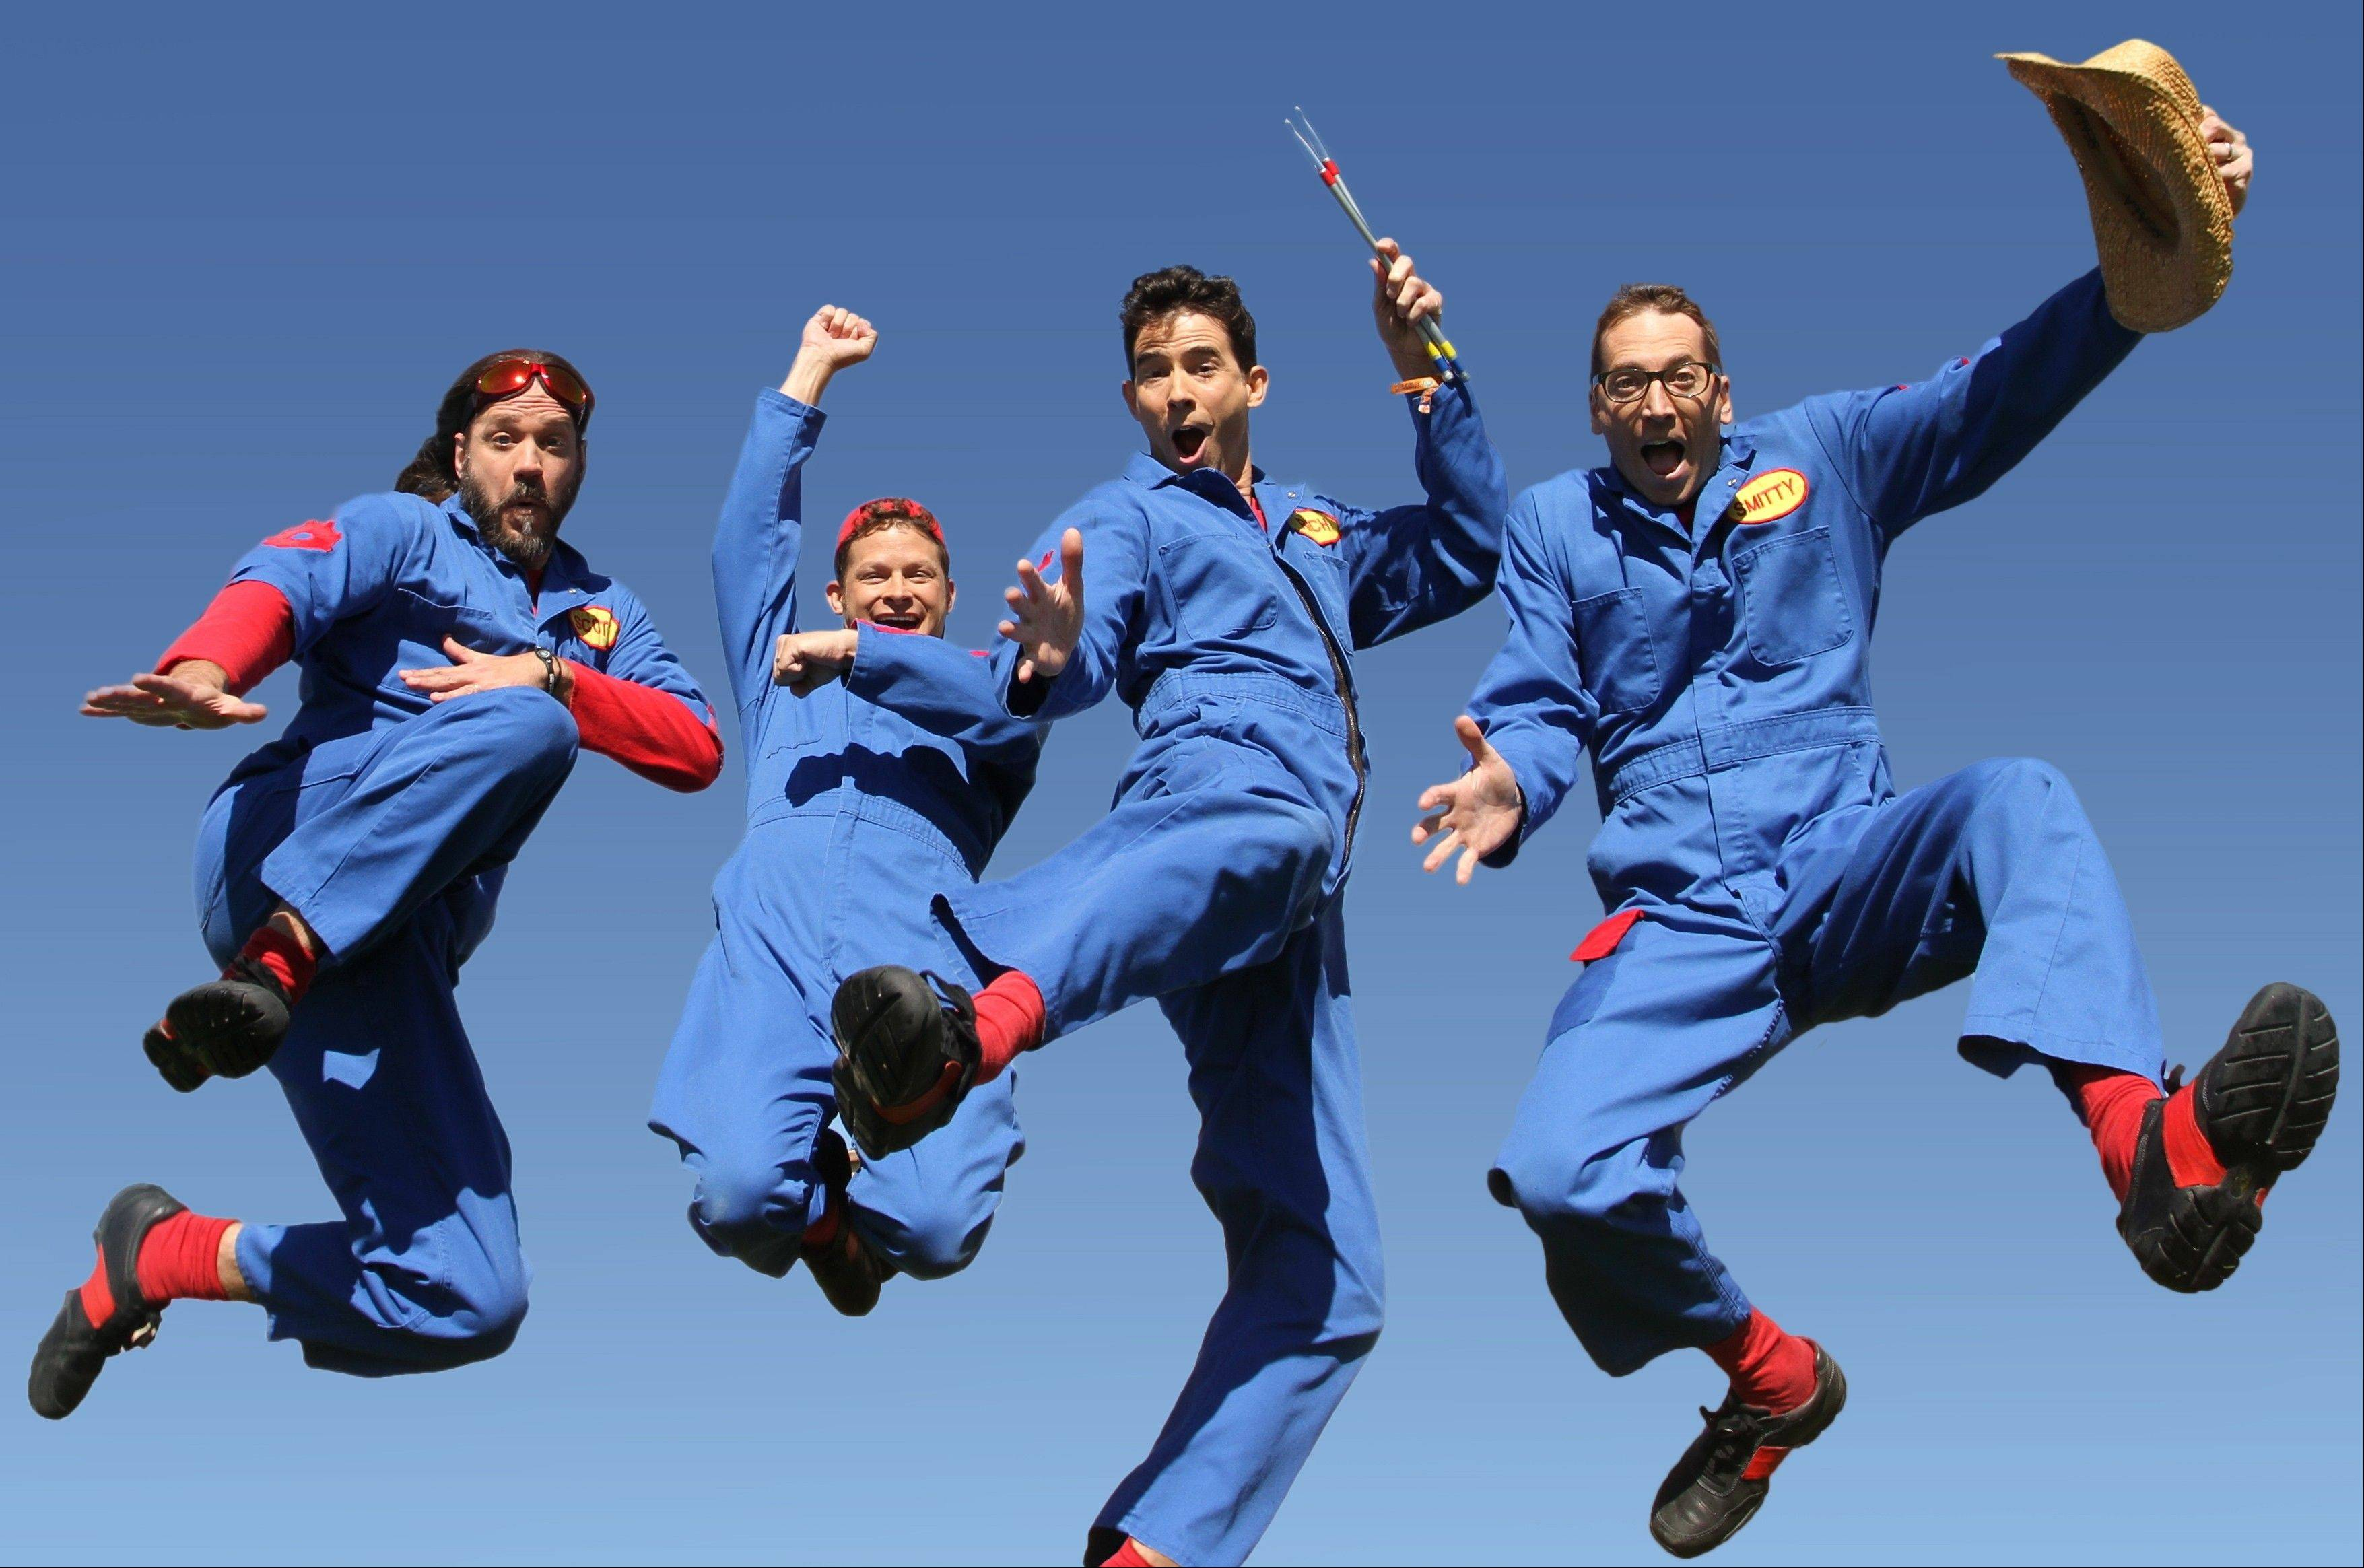 Disney Junior�s �Imagination Movers� comes to the Paramount Theatre in Aurora in May.